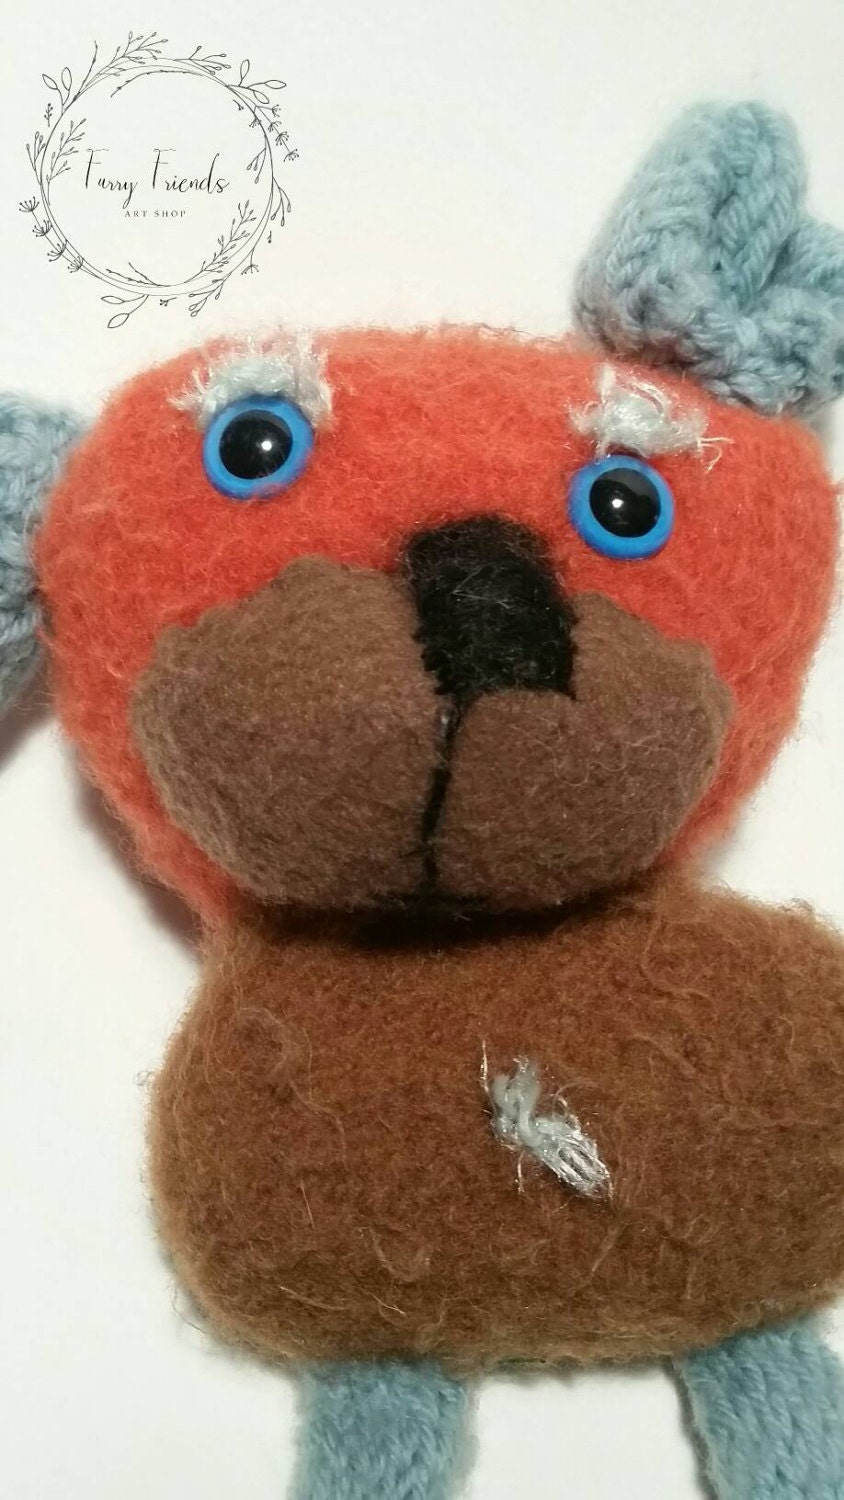 Squiggly The Long Legged Felted Orange and Blue Teddy Bear